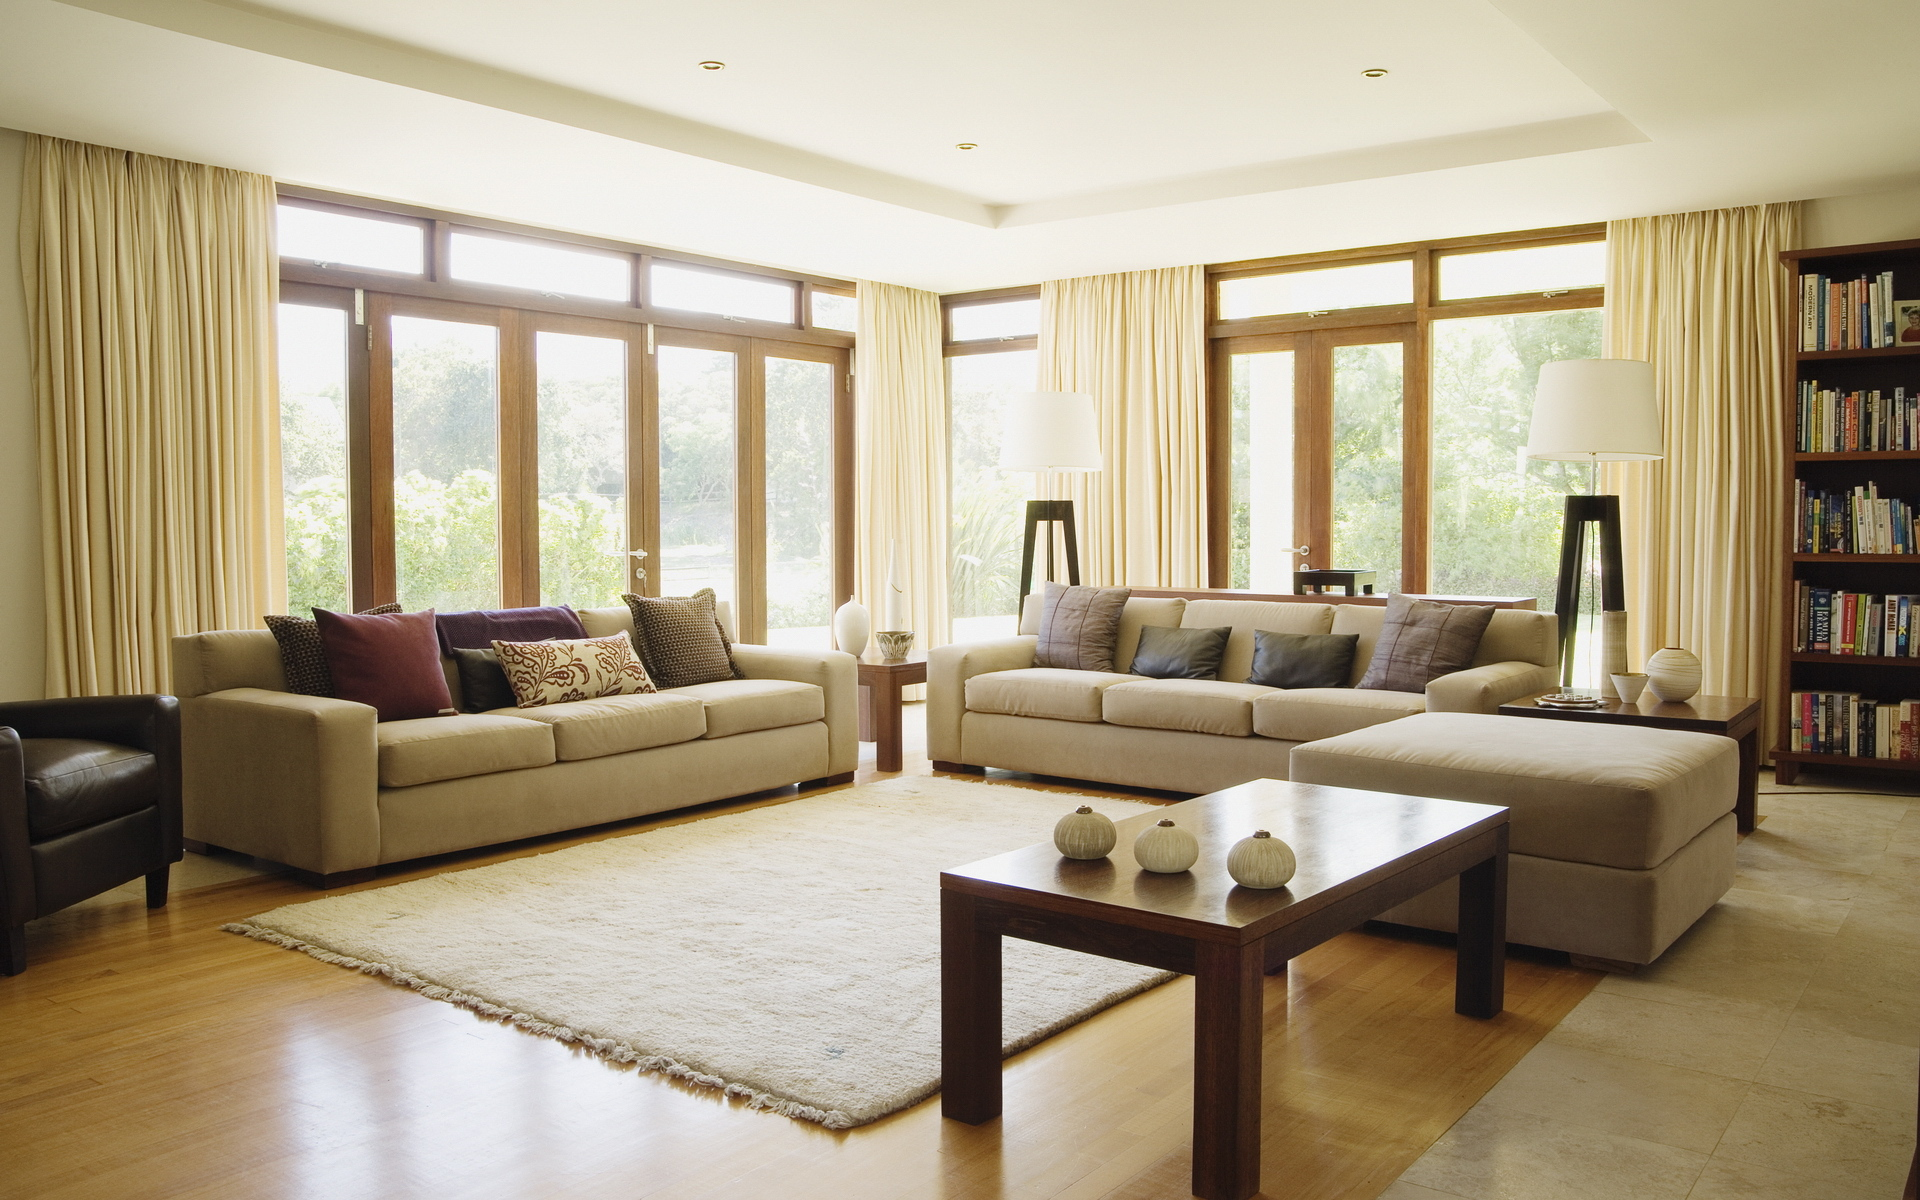 interior-design-interior-design-room-furniture-sofas-chairs-desks-carpet-windows-blinds-curtains